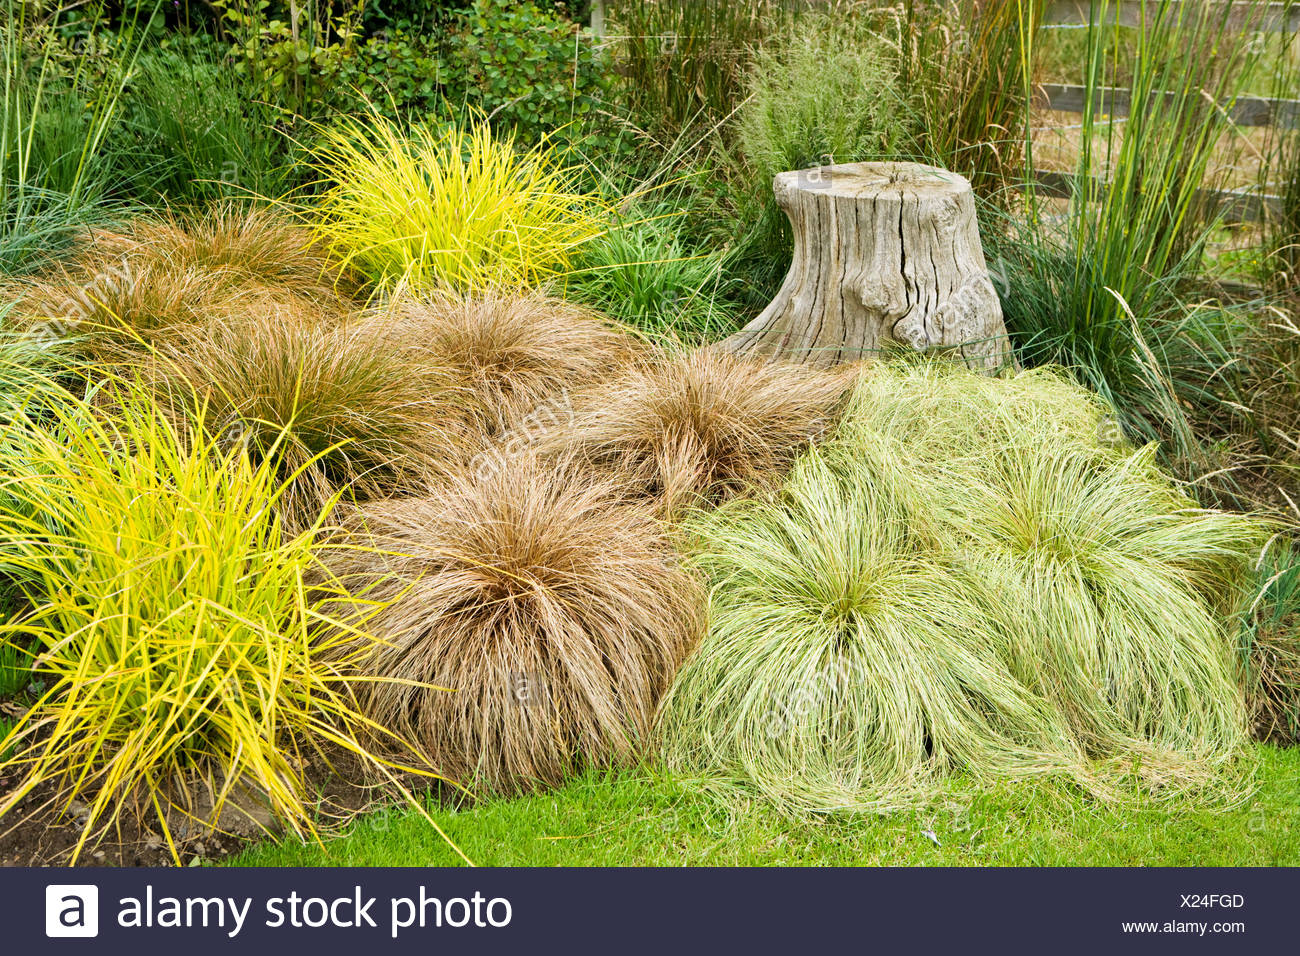 Uberlegen Carex Testacea Stock Photos U0026 Carex Testacea Stock Images   Alamy